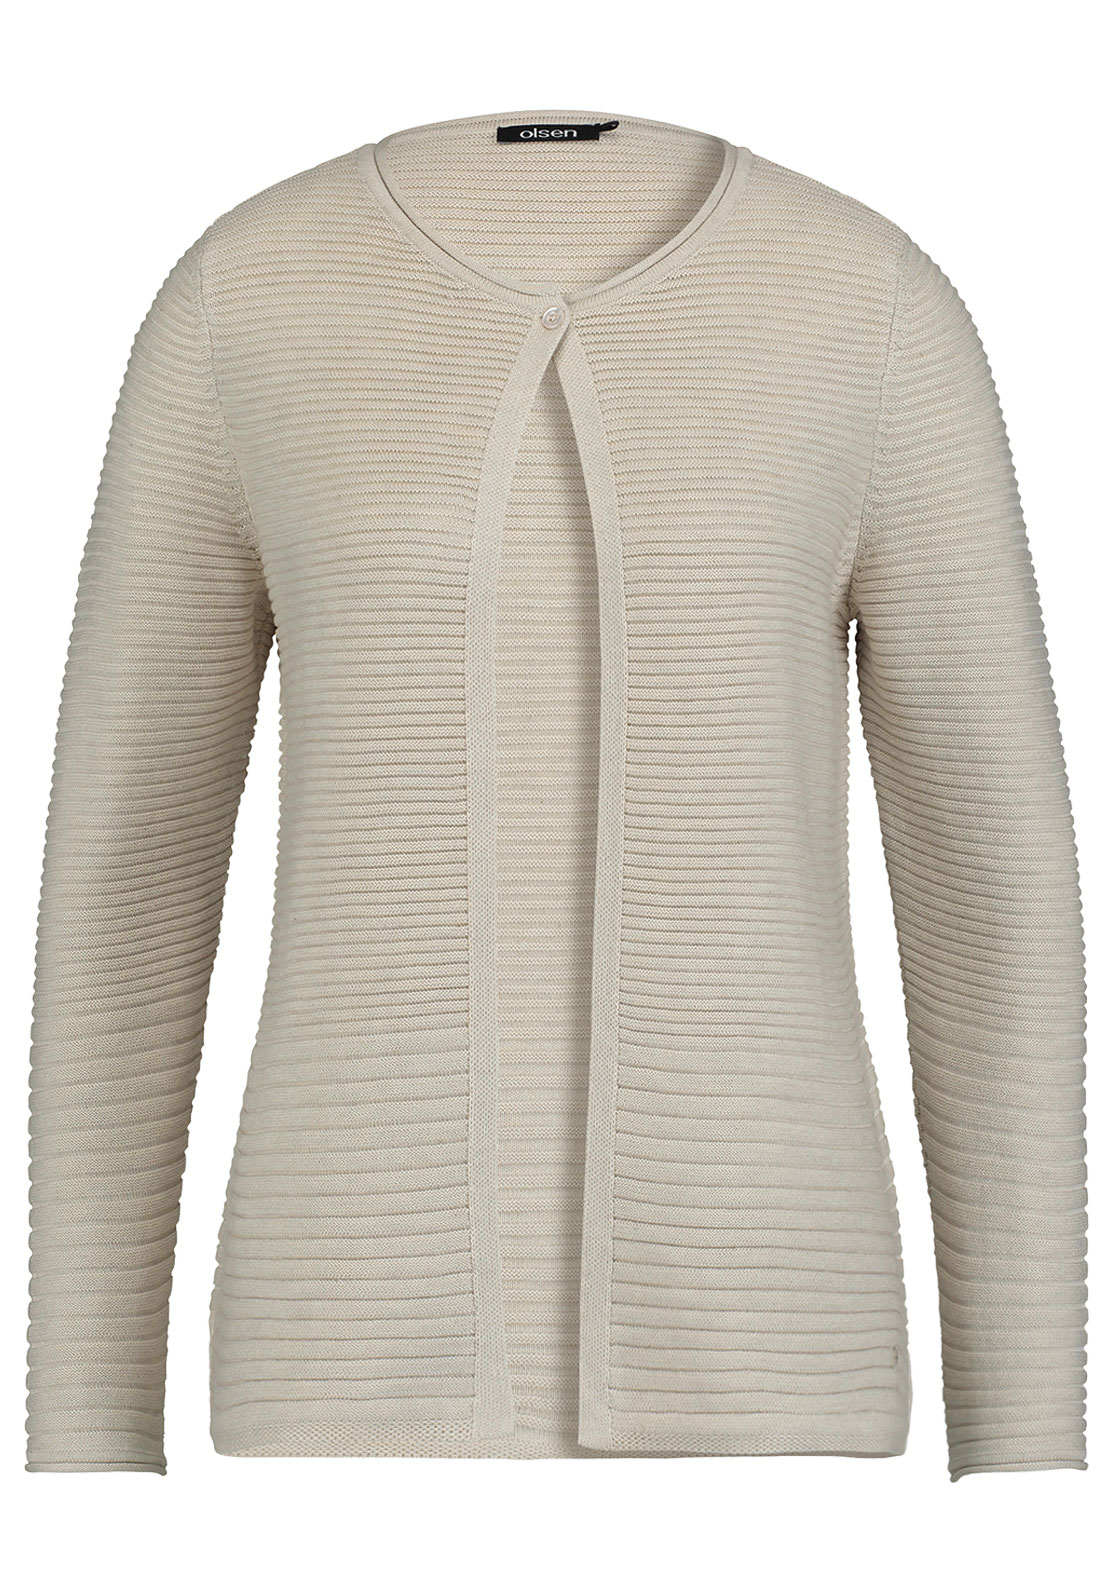 Olsen Ribbed Cotton Blend Cardigan, Beige